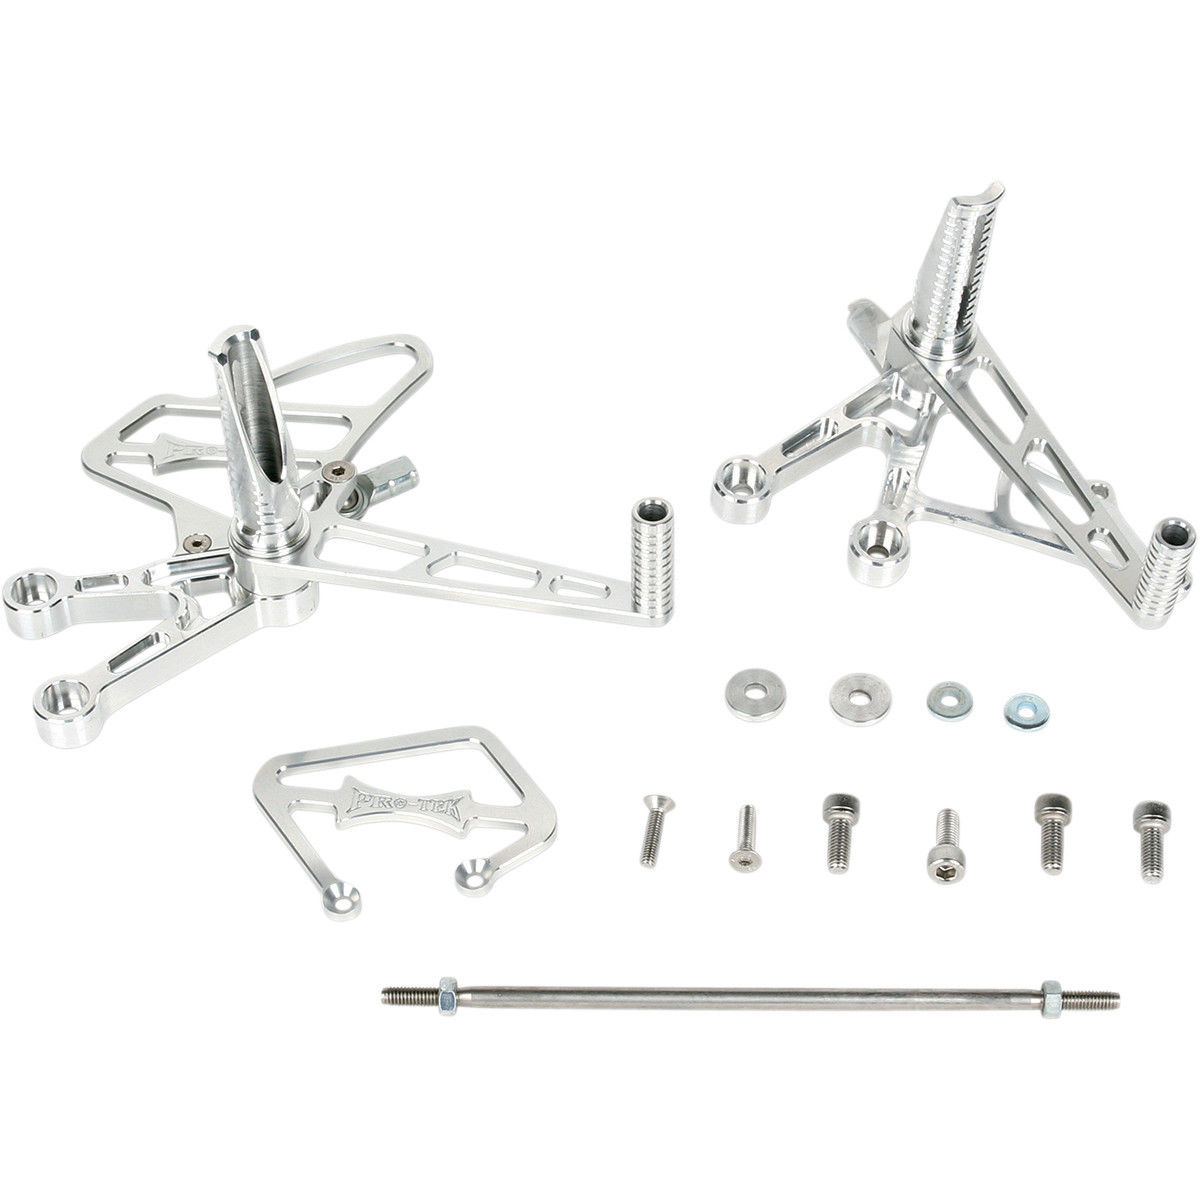 Rear Sets RS-220 Kit/Parts